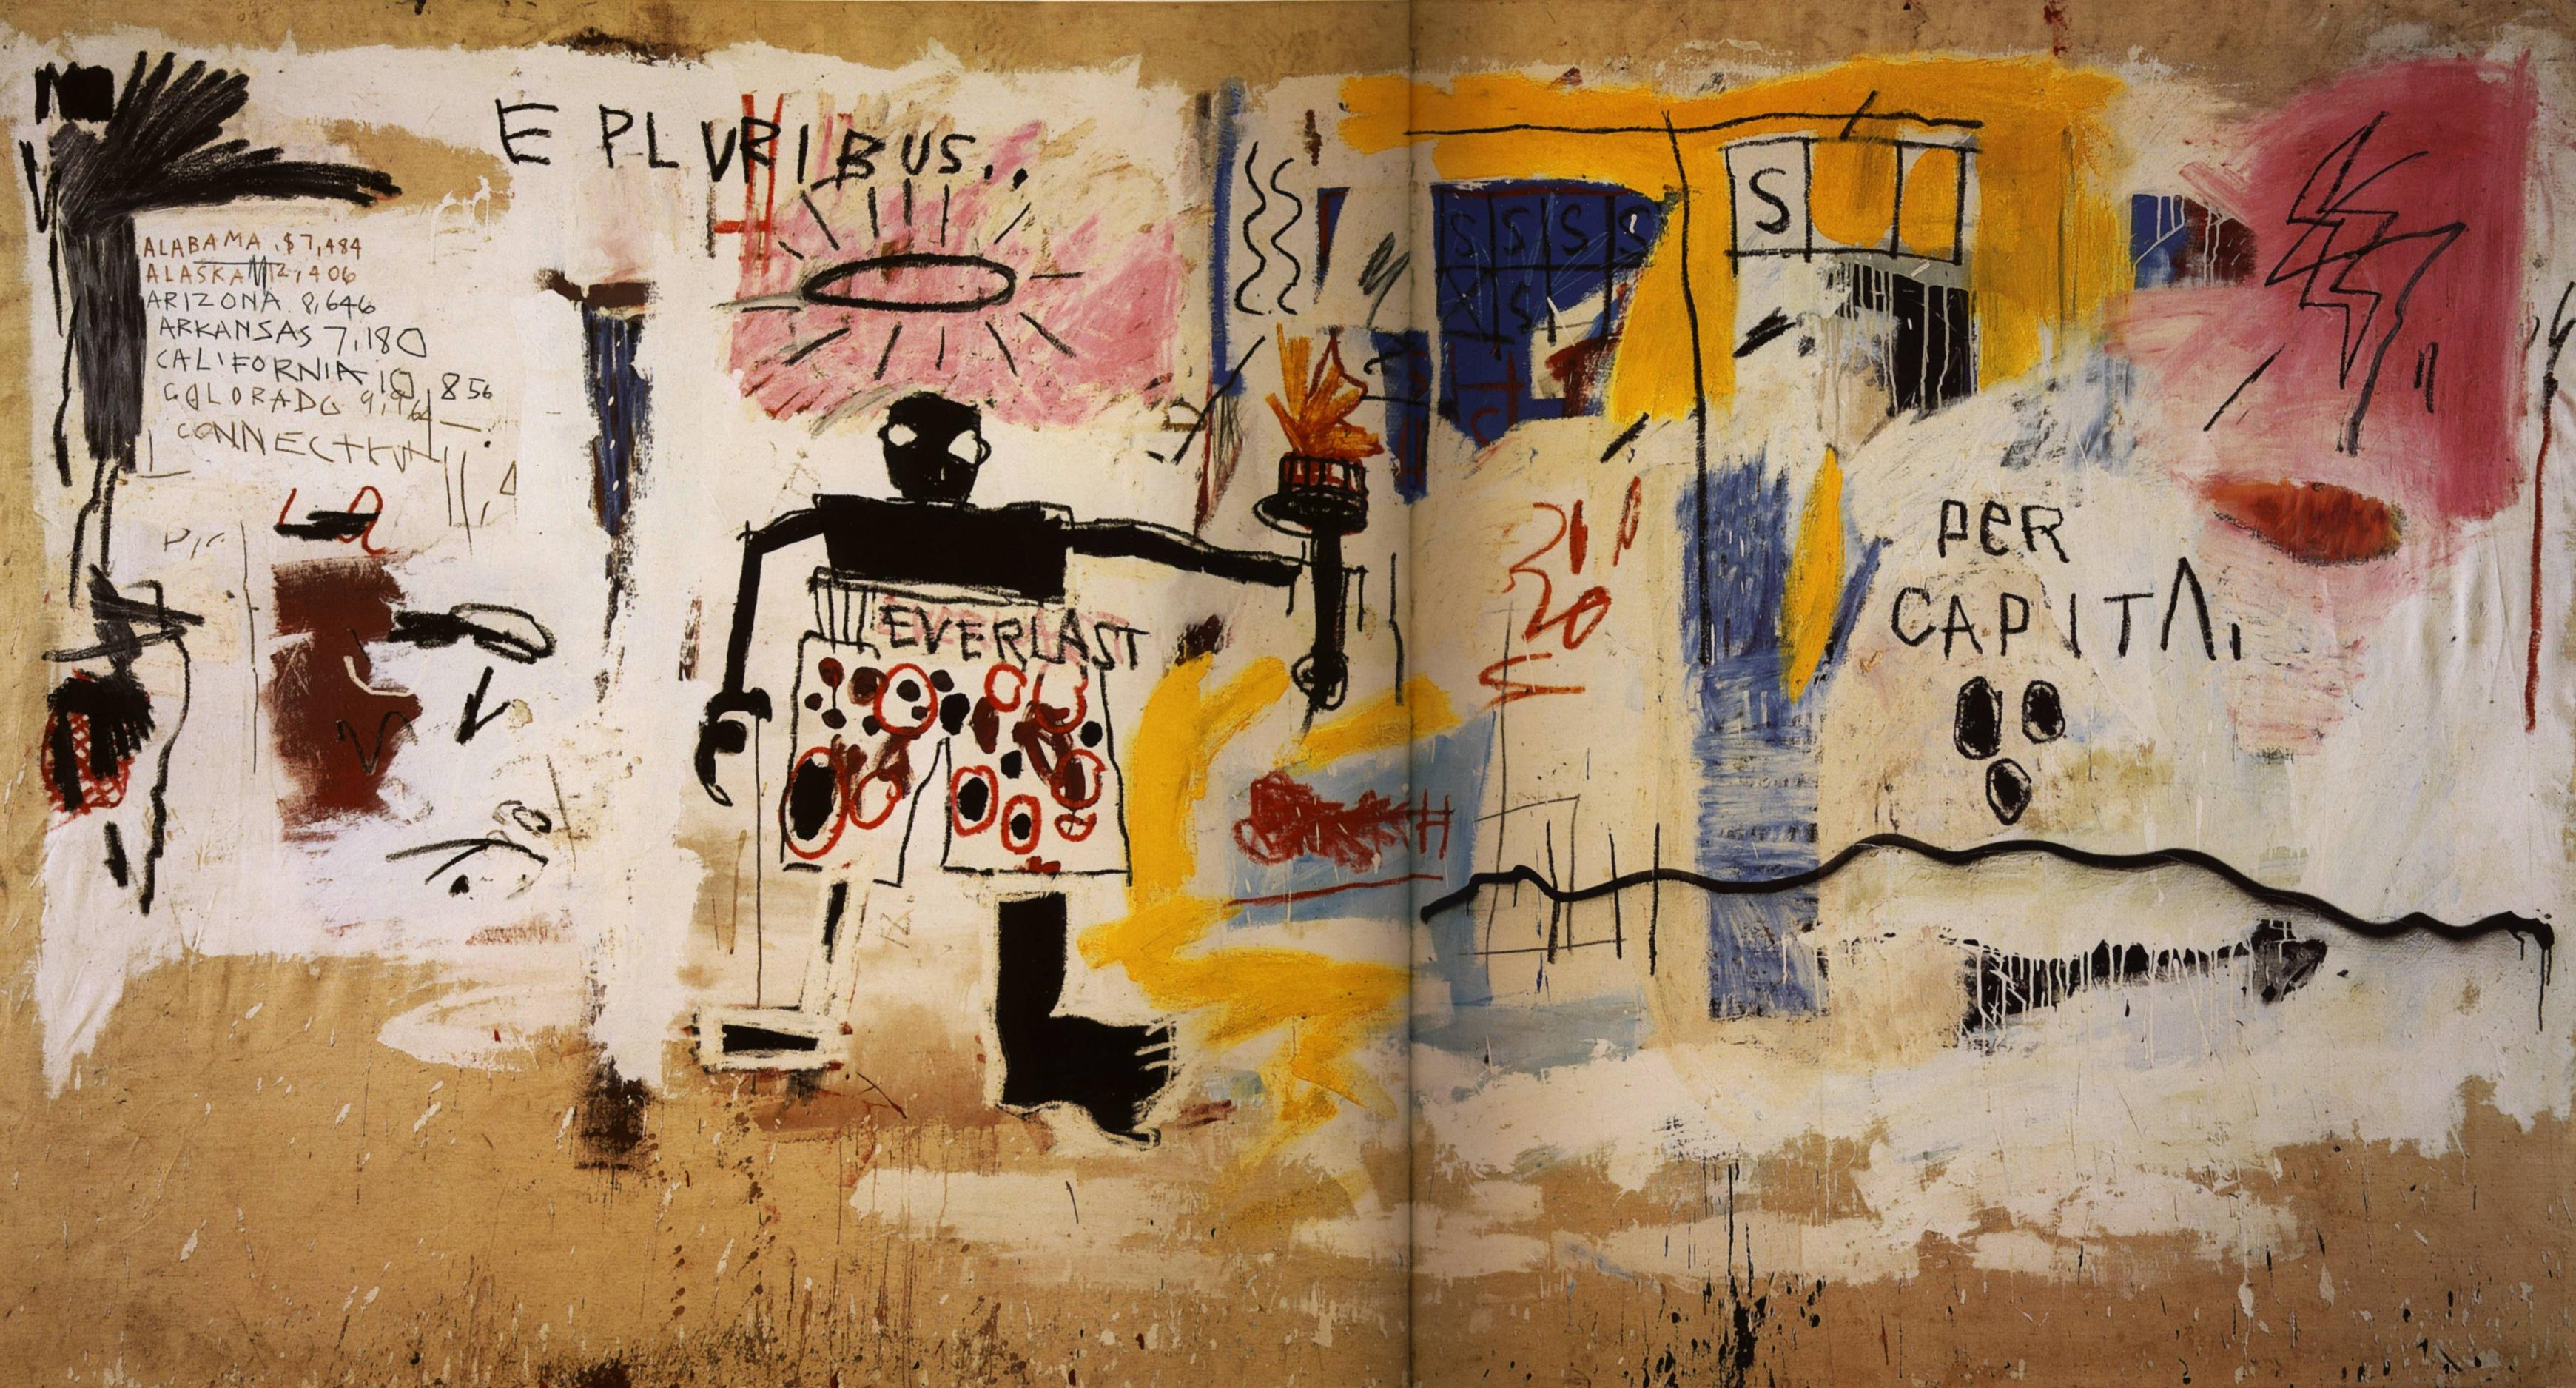 Jean Michel Basquiat Wallpaper Images & Pictures - Becuo